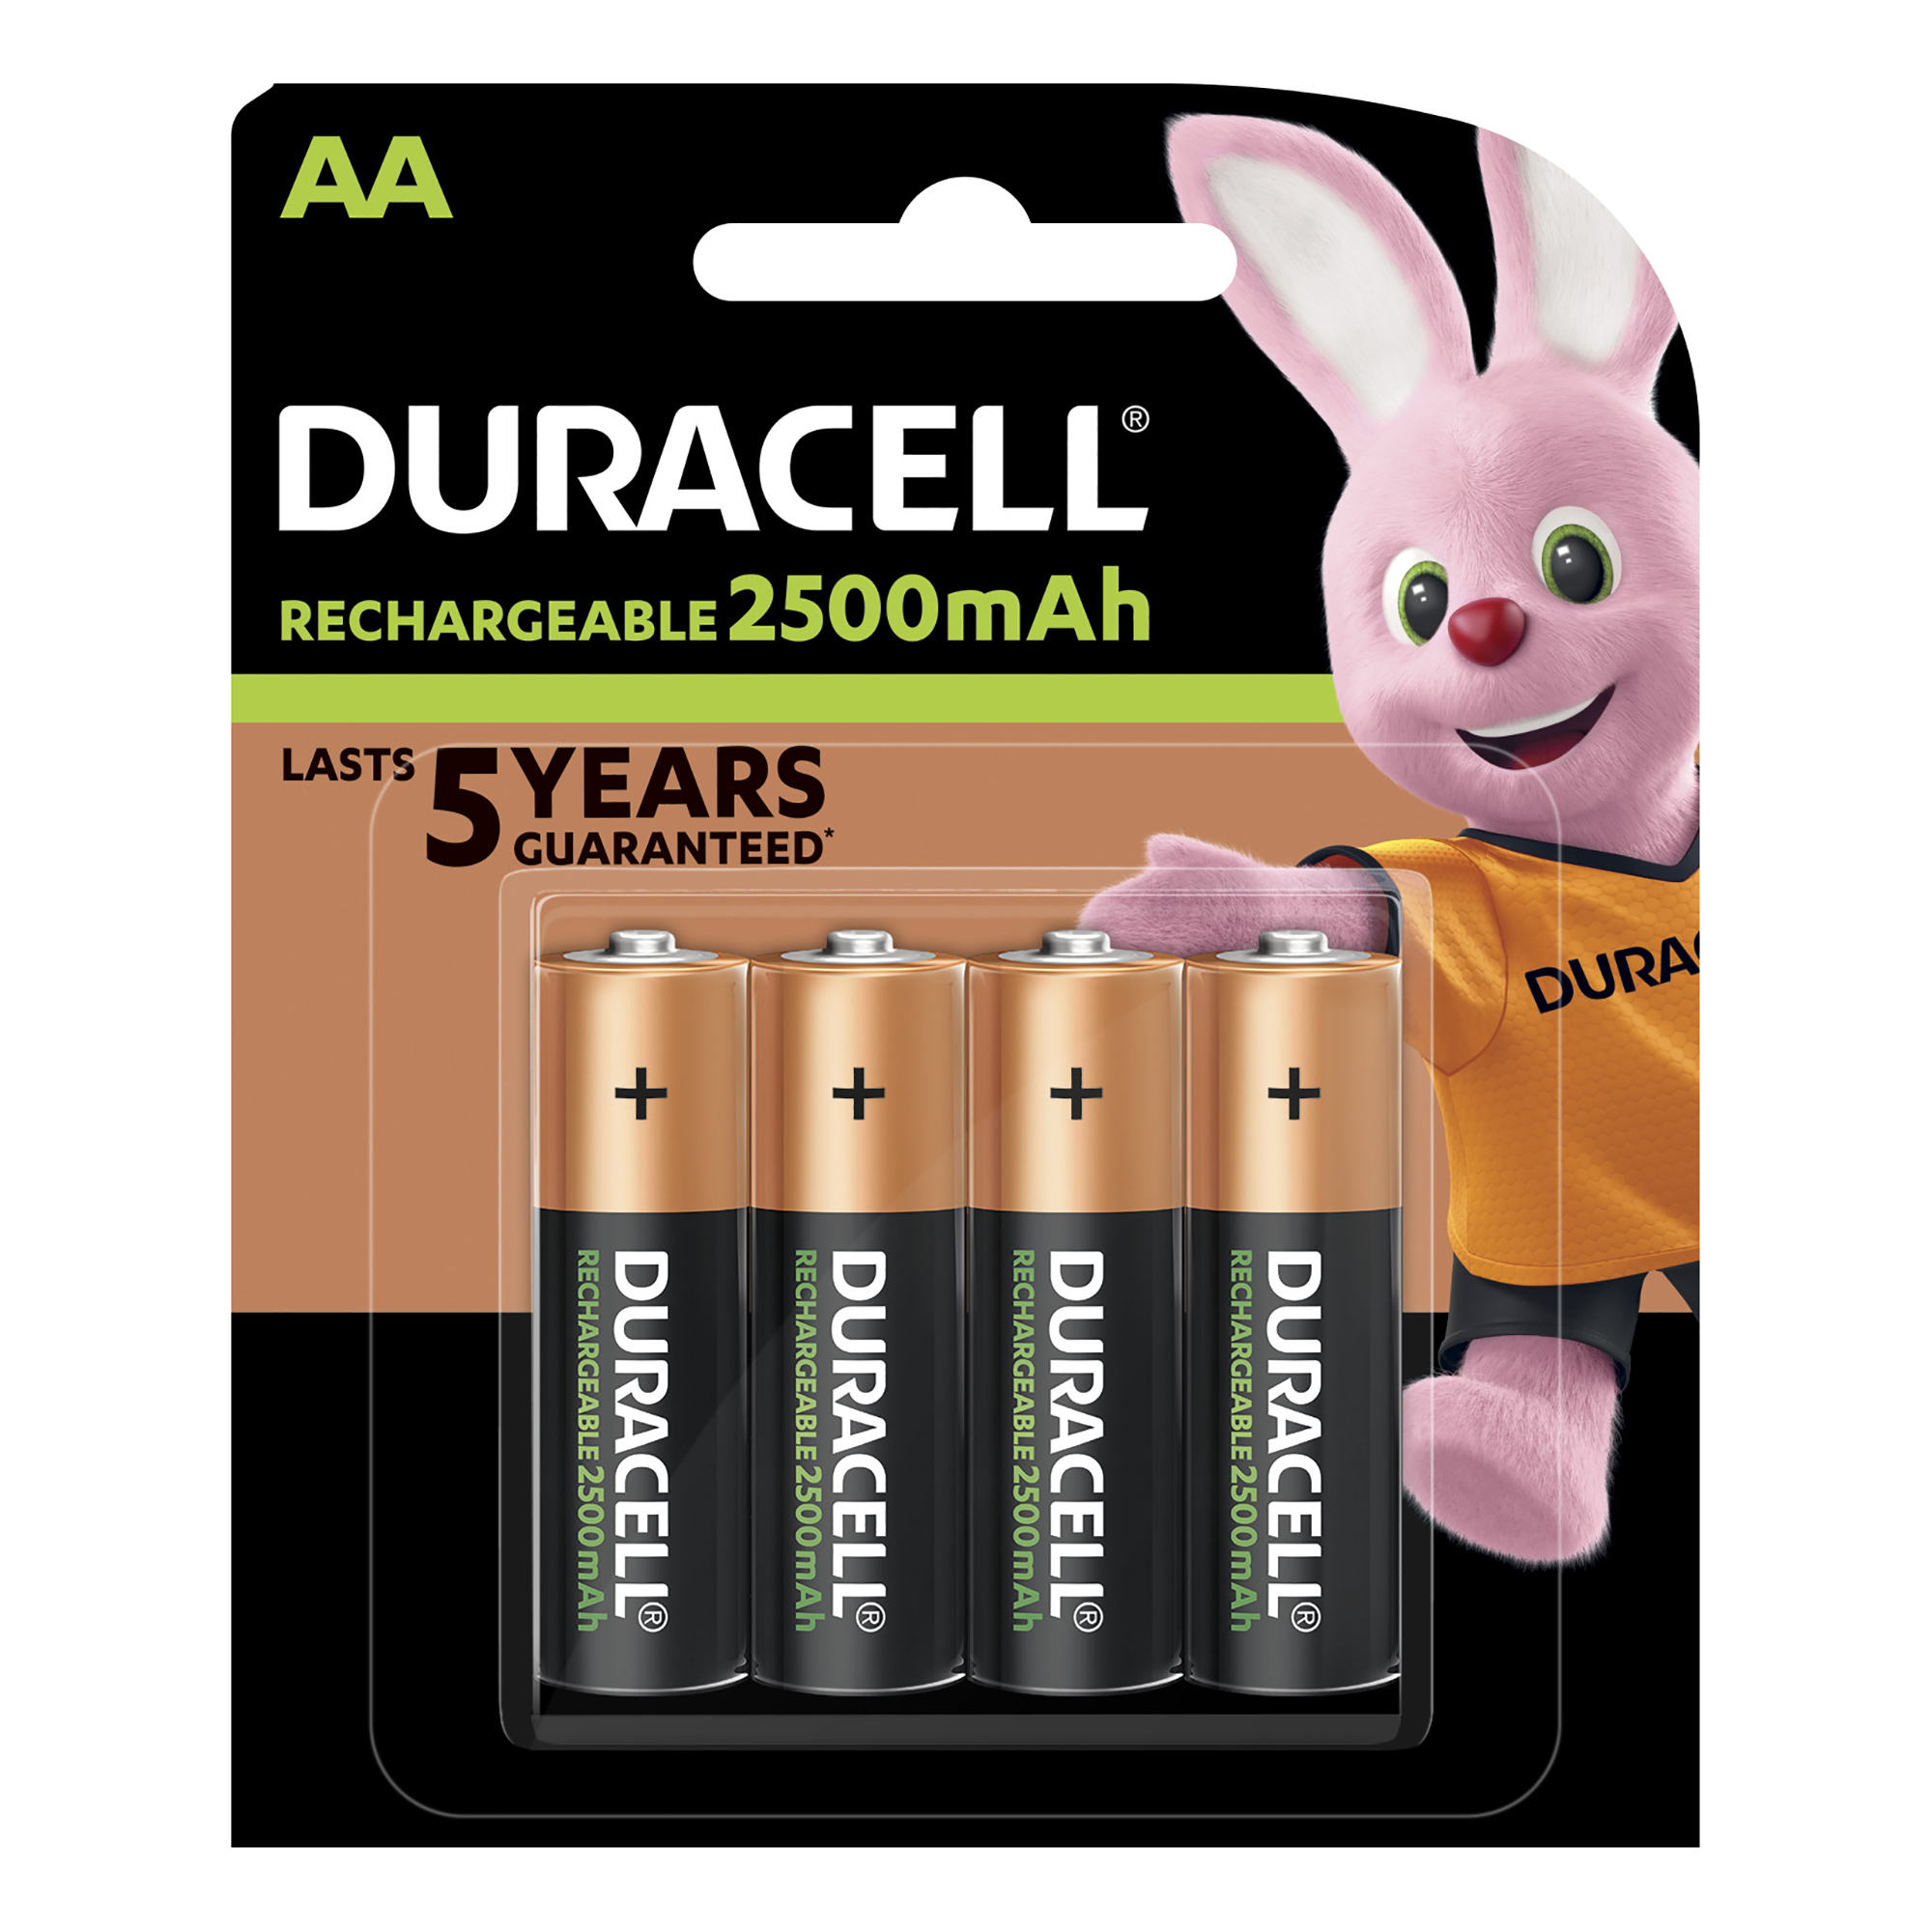 Duracell Stay Charged Battery Long-life Rechargeable 2500mAh AA Size 1.2V Ref 81418237 Pack 4